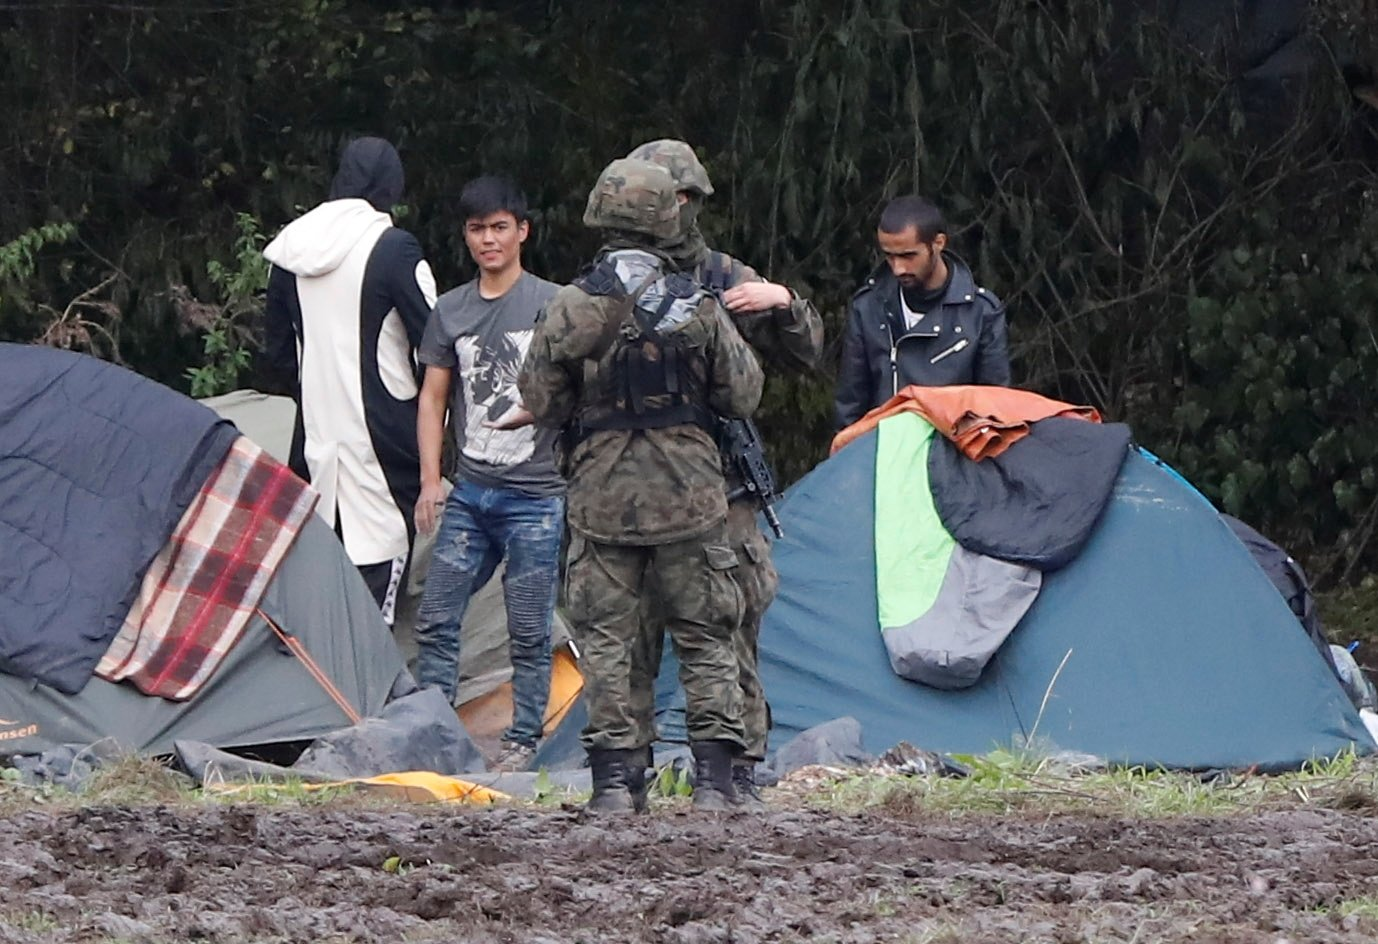 Polish border guard officers stand guard next to a group of migrants stranded on the border between Belarus and Poland near the village of Usnarz Gorny, Poland, Sept. 1, 2021. (Reuters Photo)